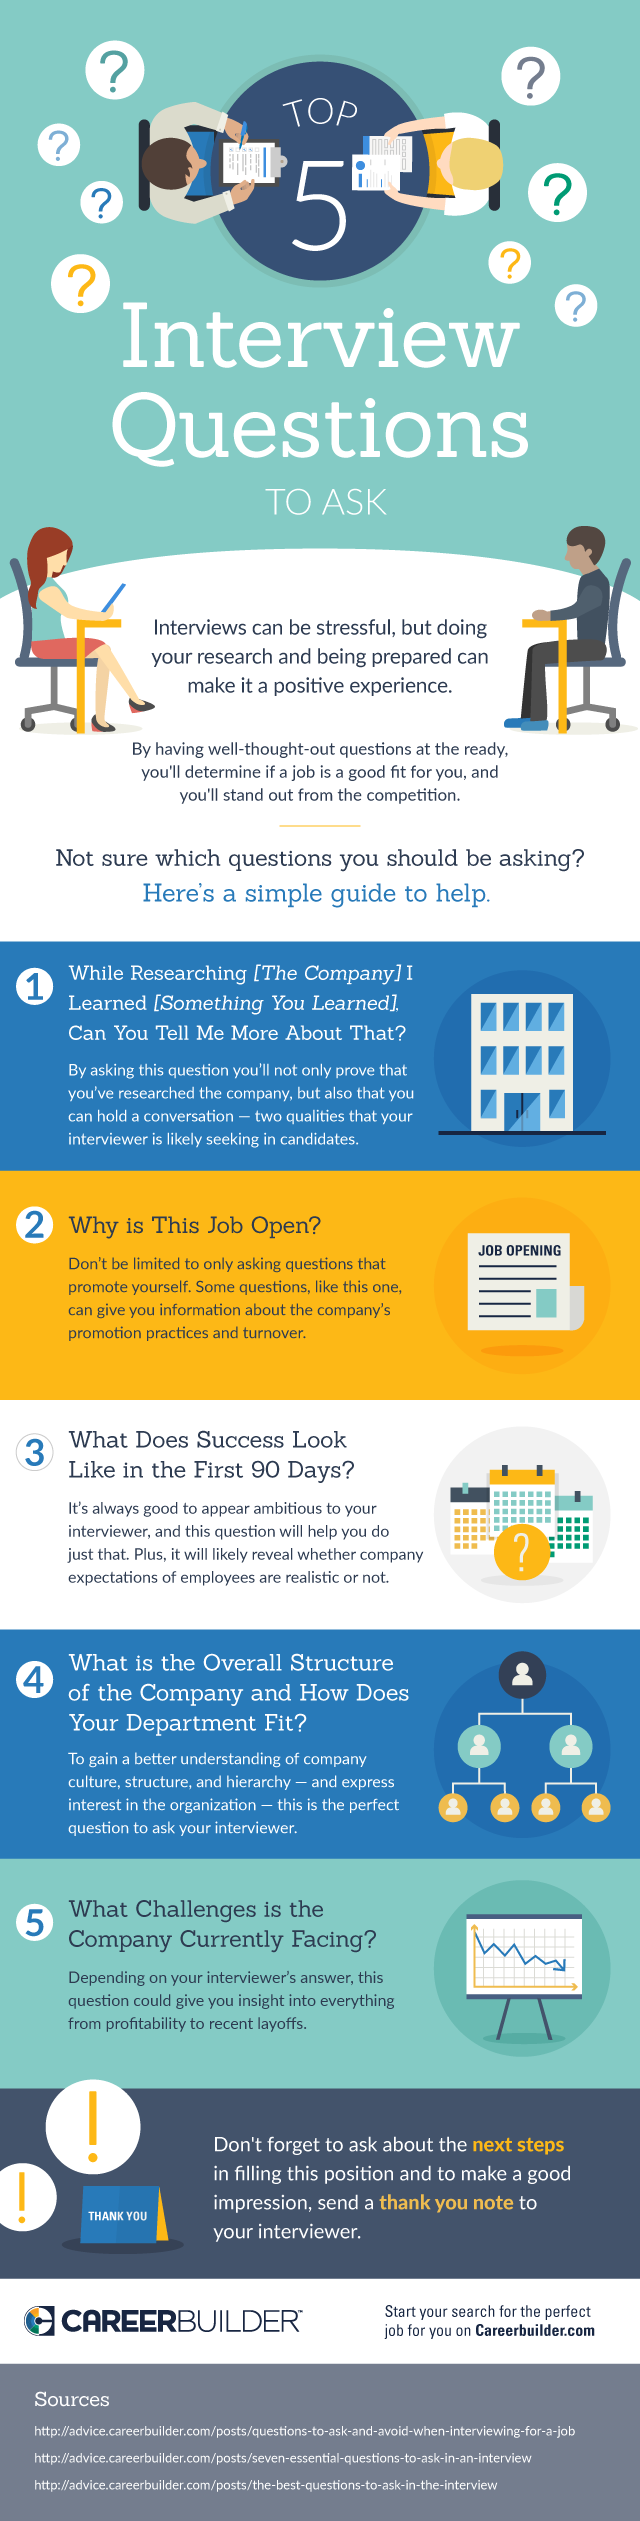 Top 5 Interview Questions to Ask